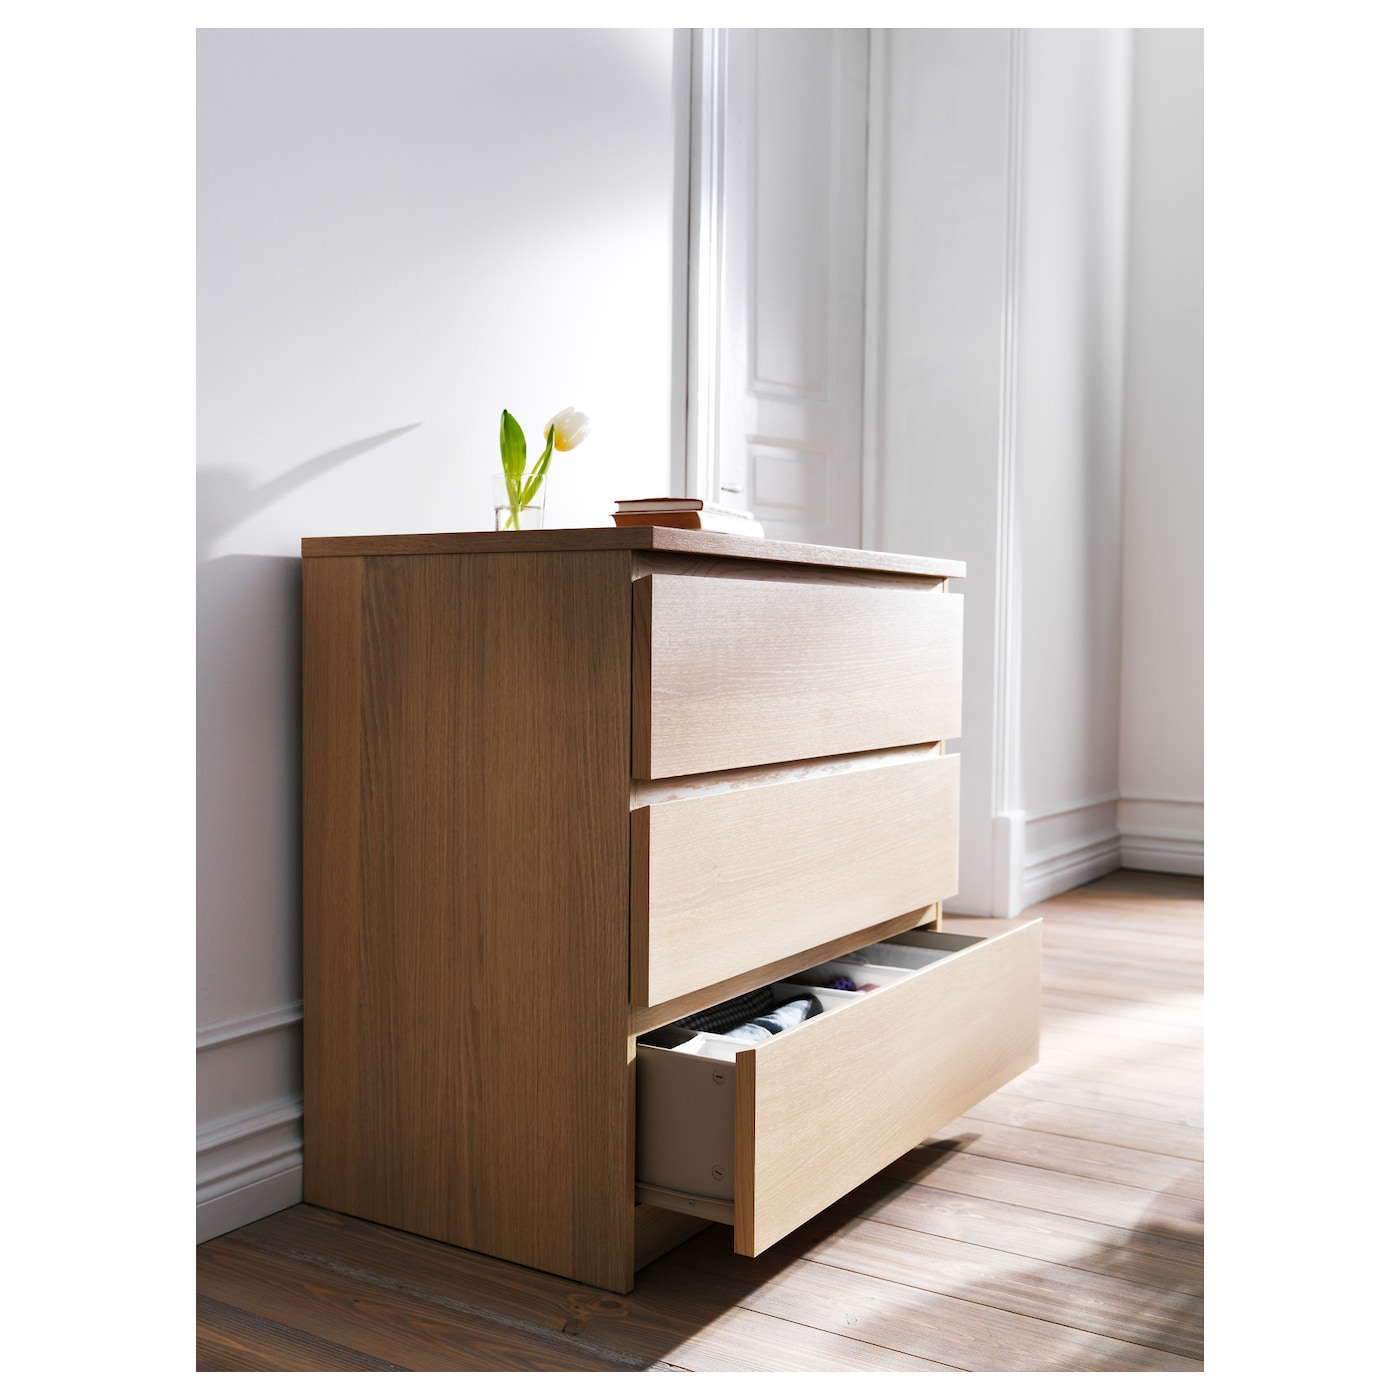 malm chest of 3 drawers white stained oak veneer 80 x 78 cm ikea. Black Bedroom Furniture Sets. Home Design Ideas